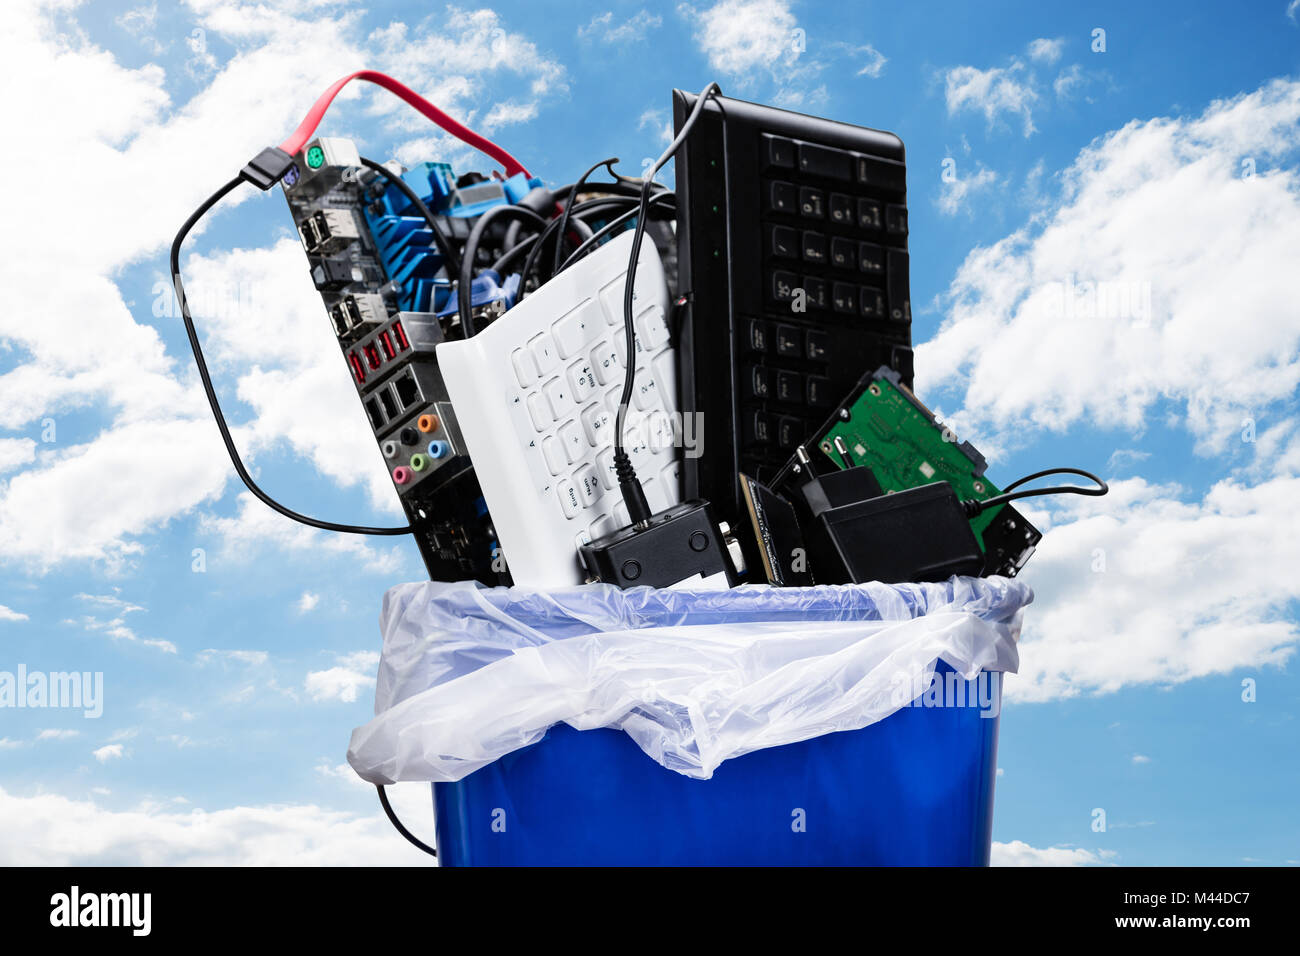 Close-up Of Damaged Hardware Equipment In Blue Dustbin Against Sky - Stock Image